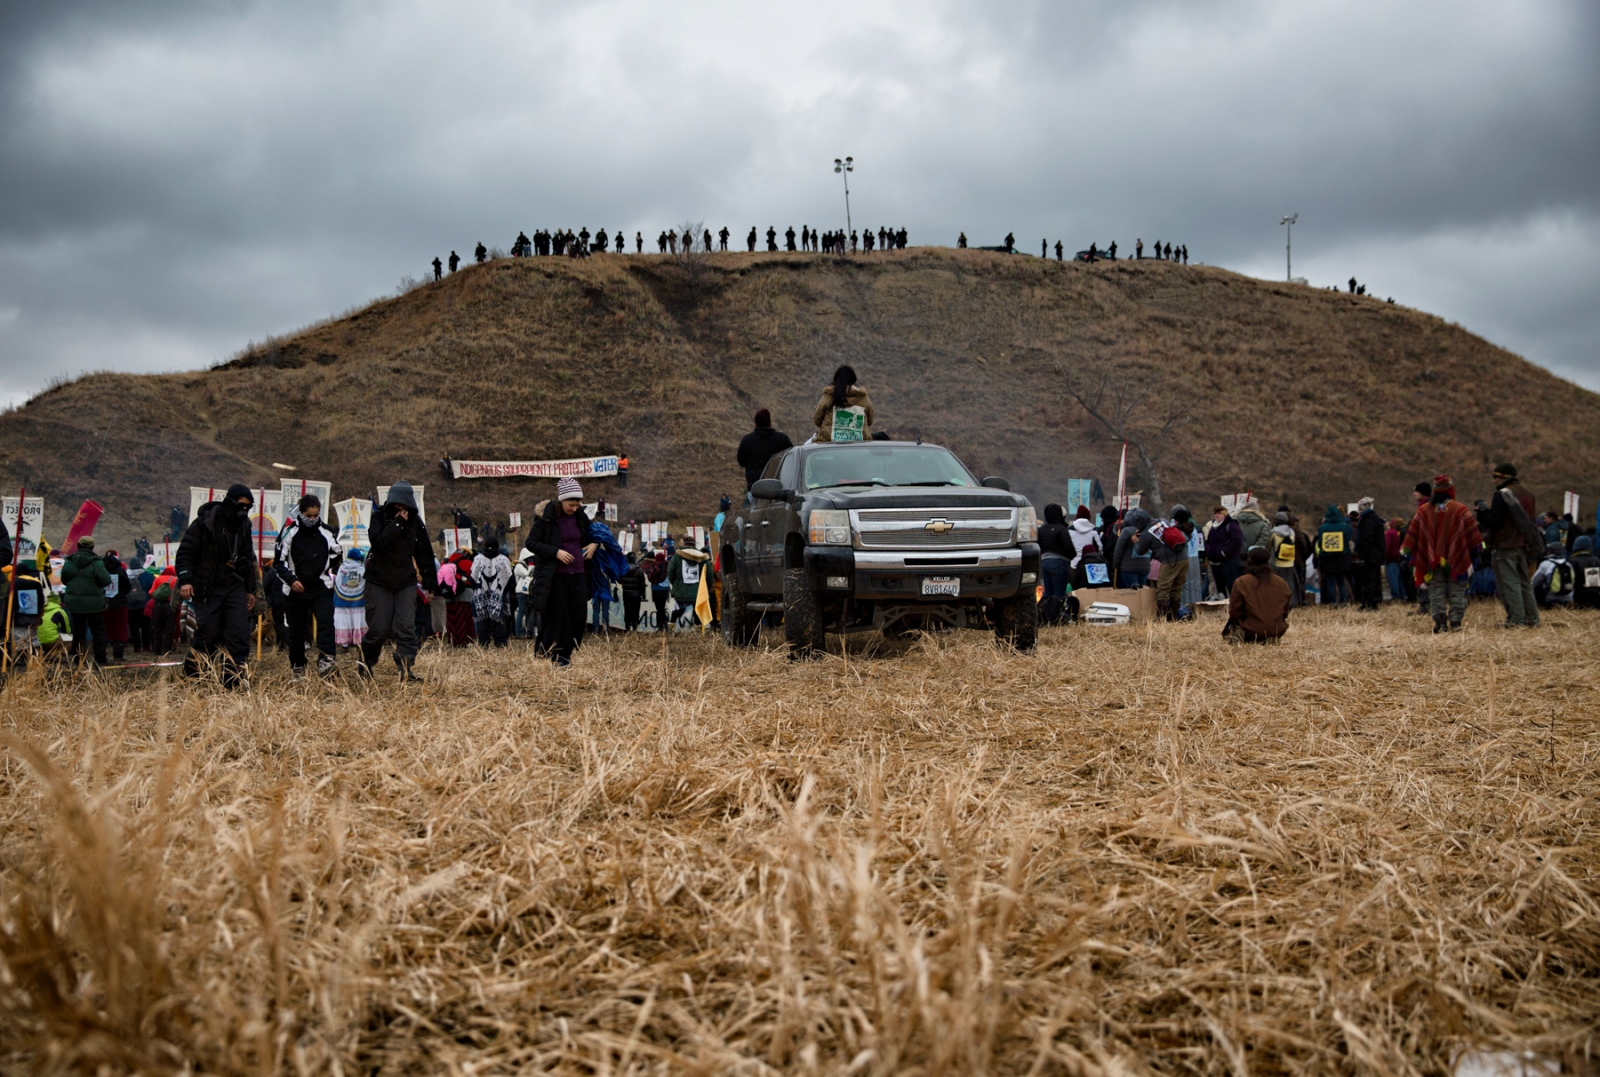 A police line on top of Turtle Hill, which the Sioux consider sacred ground, watch the Water Protectors below.